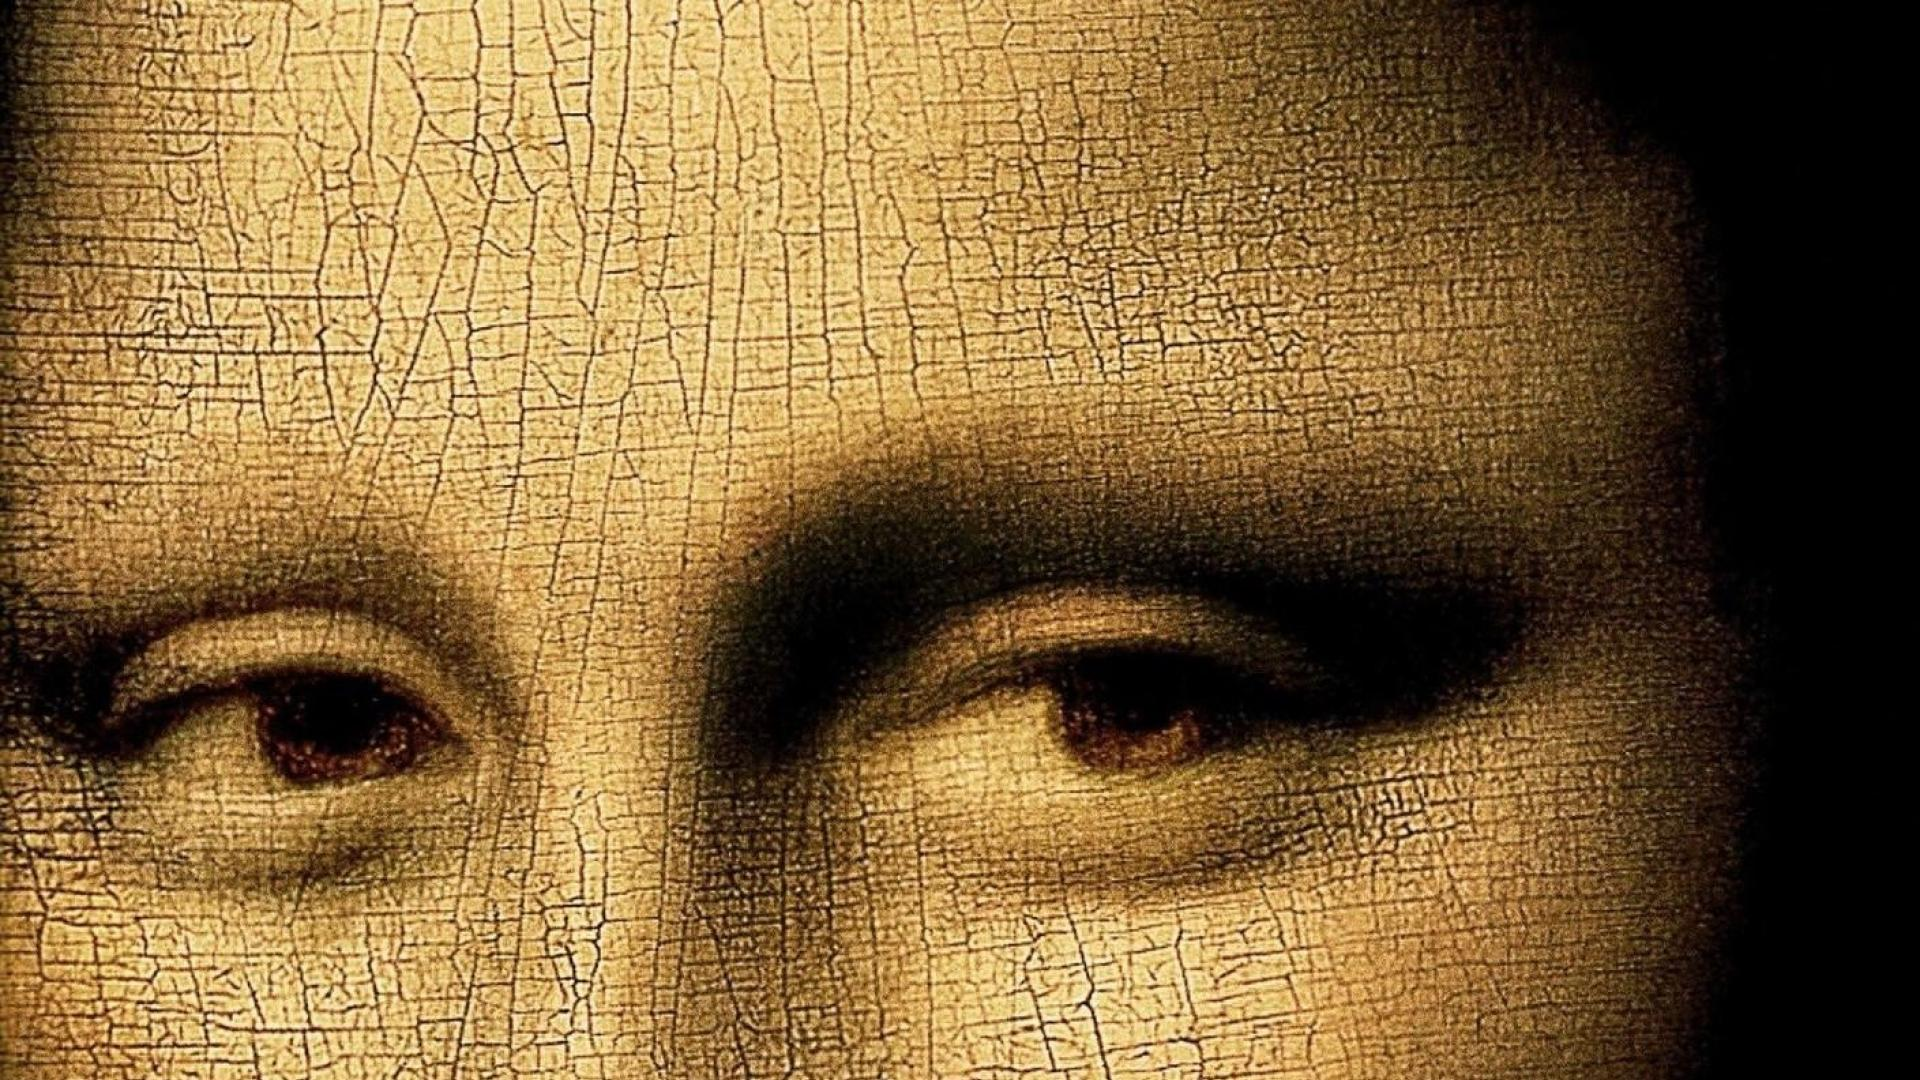 Mona lisa 2006 the da vinci code wallpaper 66123 1920x1080